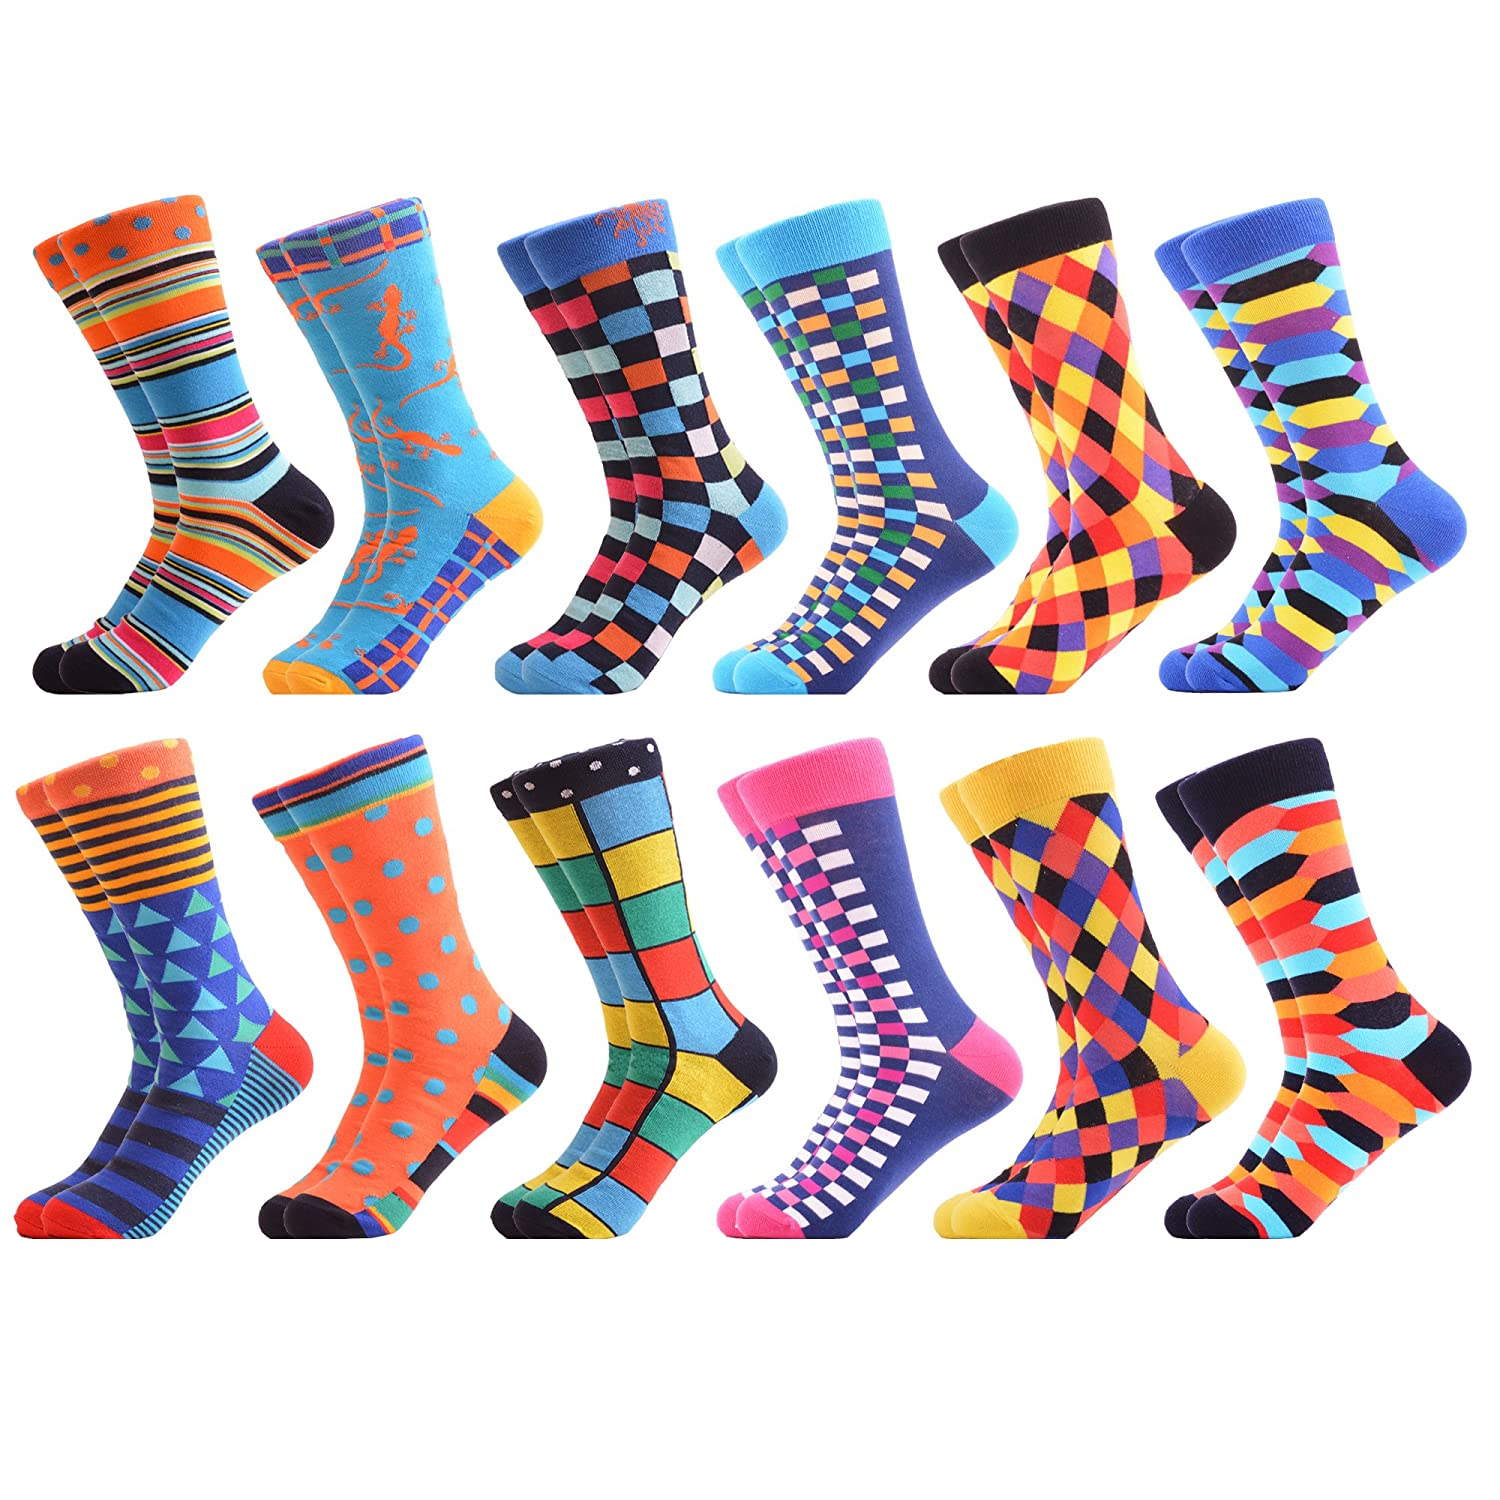 WeciBor Men's Dress Cool Colorful Fancy Novelty Funny Casual Combed Cotton Crew Socks Pack 052-02